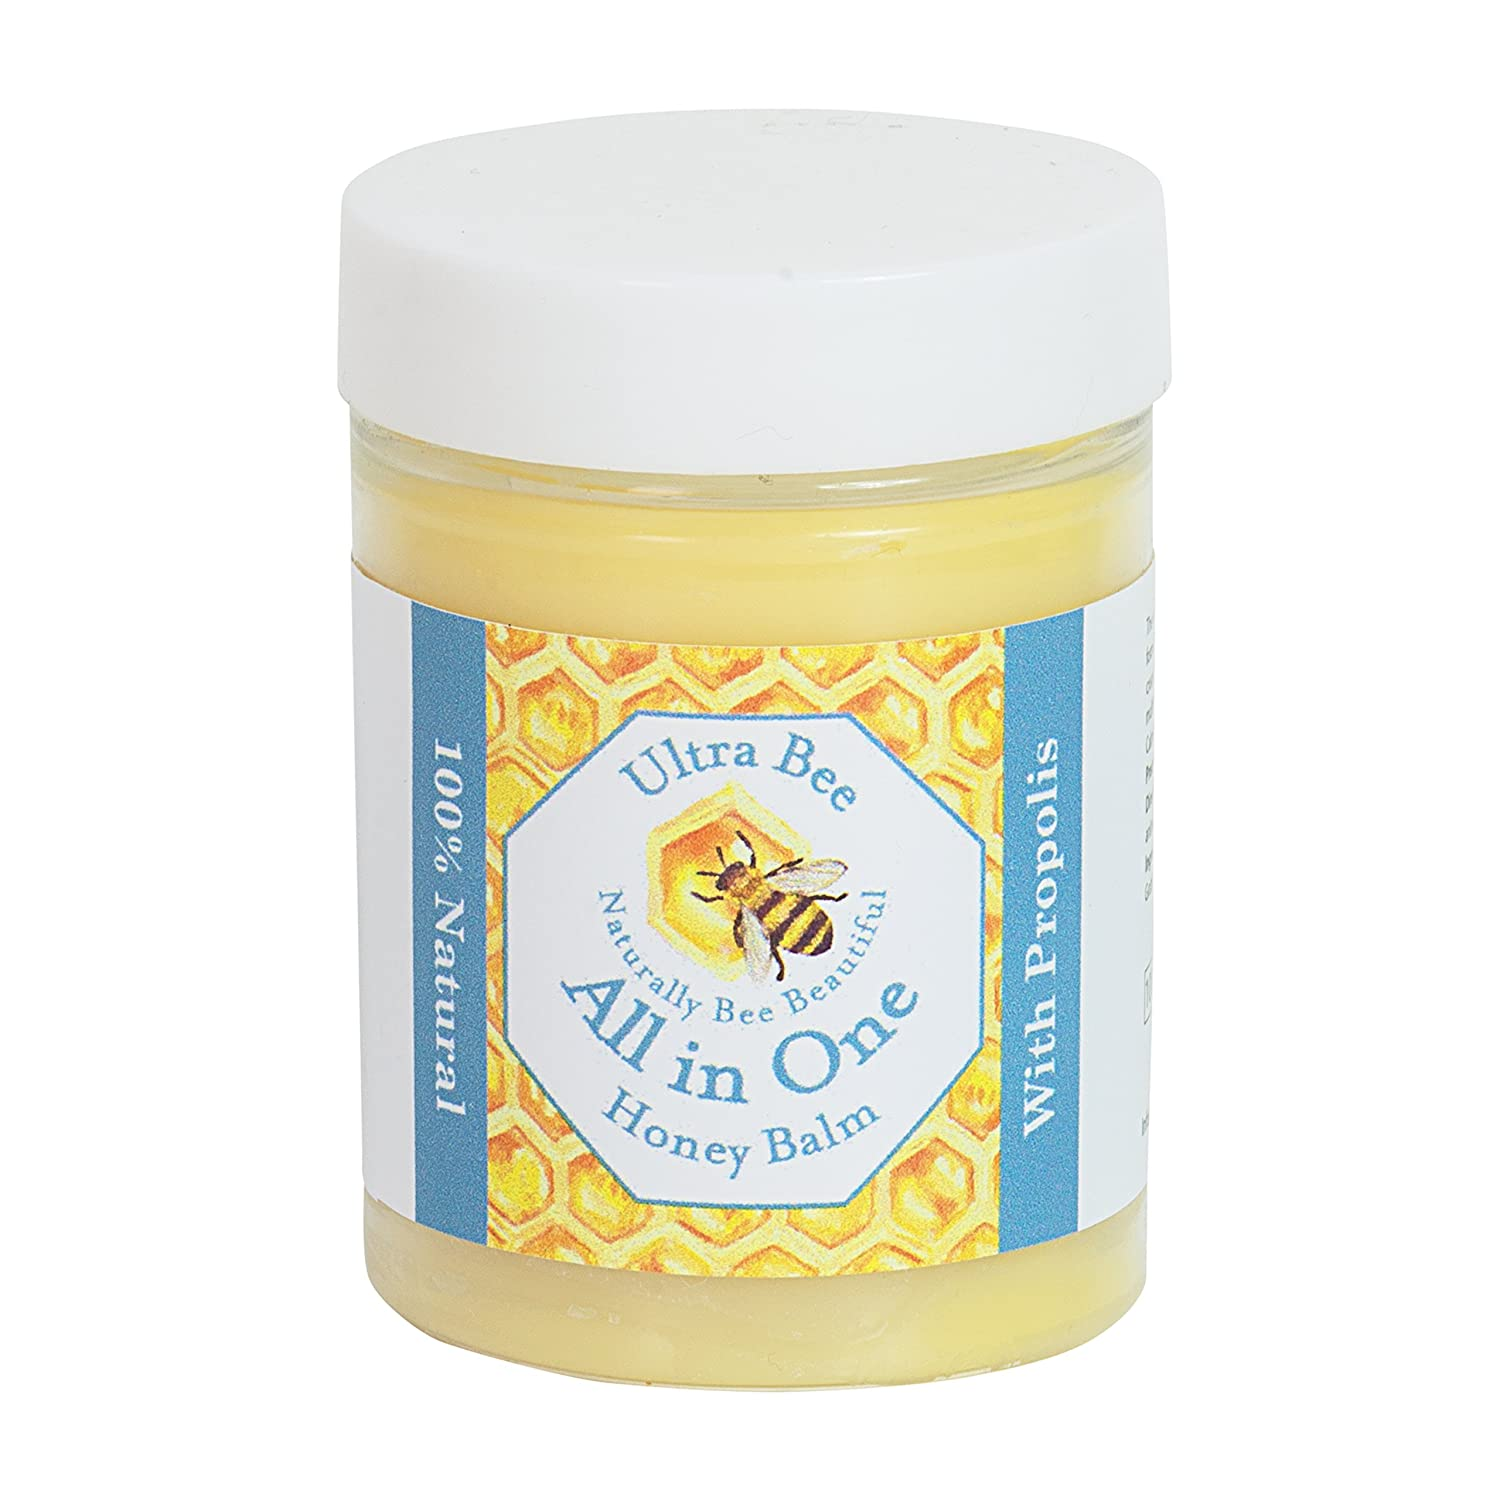 100% Natural Honey Balm, Natural Moisturiser and All Round Lubricant for Sensitive Face, Body, Lips,Tattoo's 100ml Tattoo's 100ml Ultra Bee Health